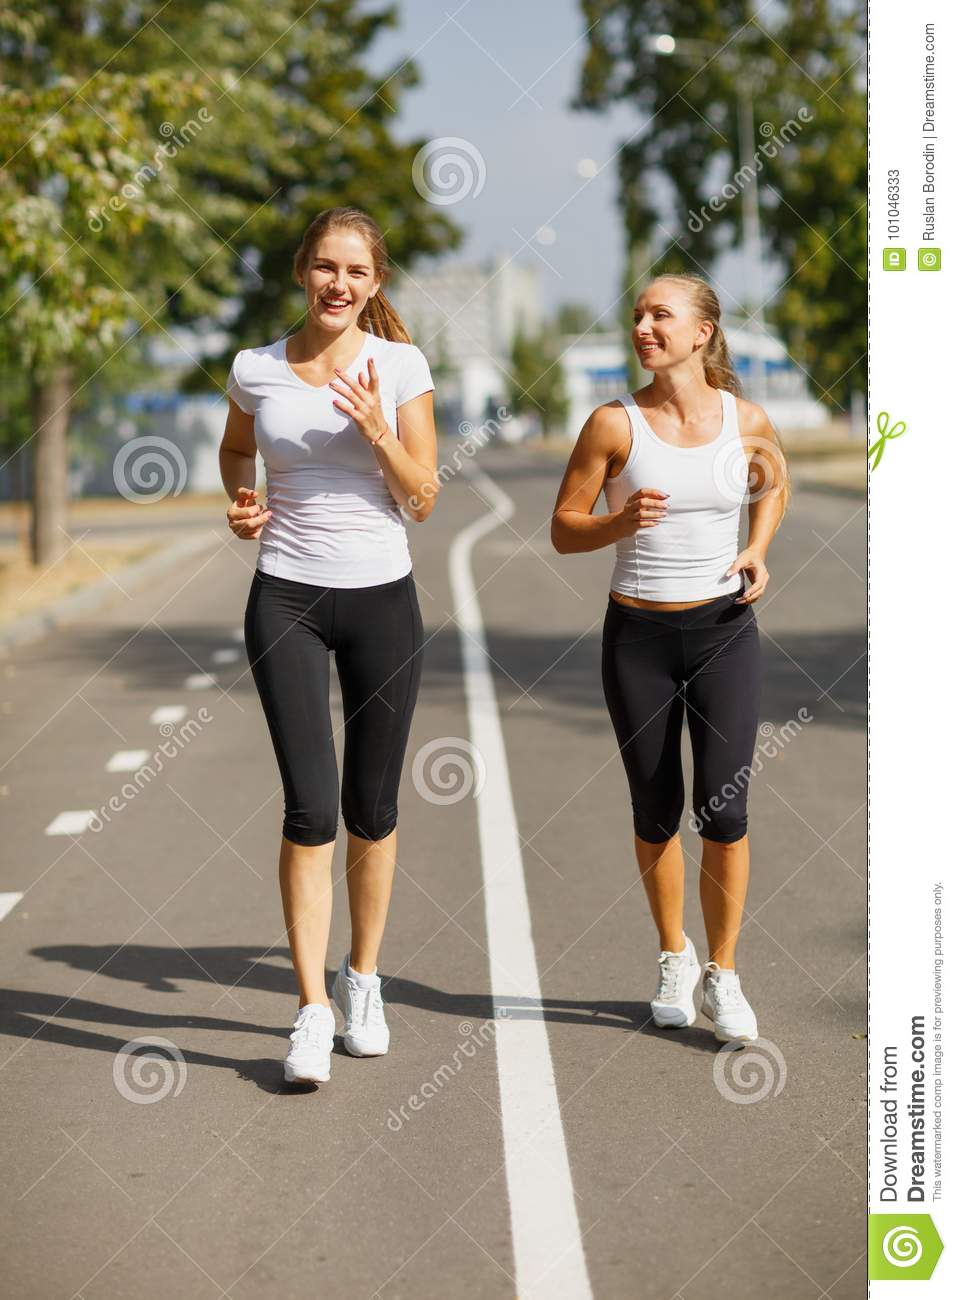 Gorgeous Girls Running On The Blurred